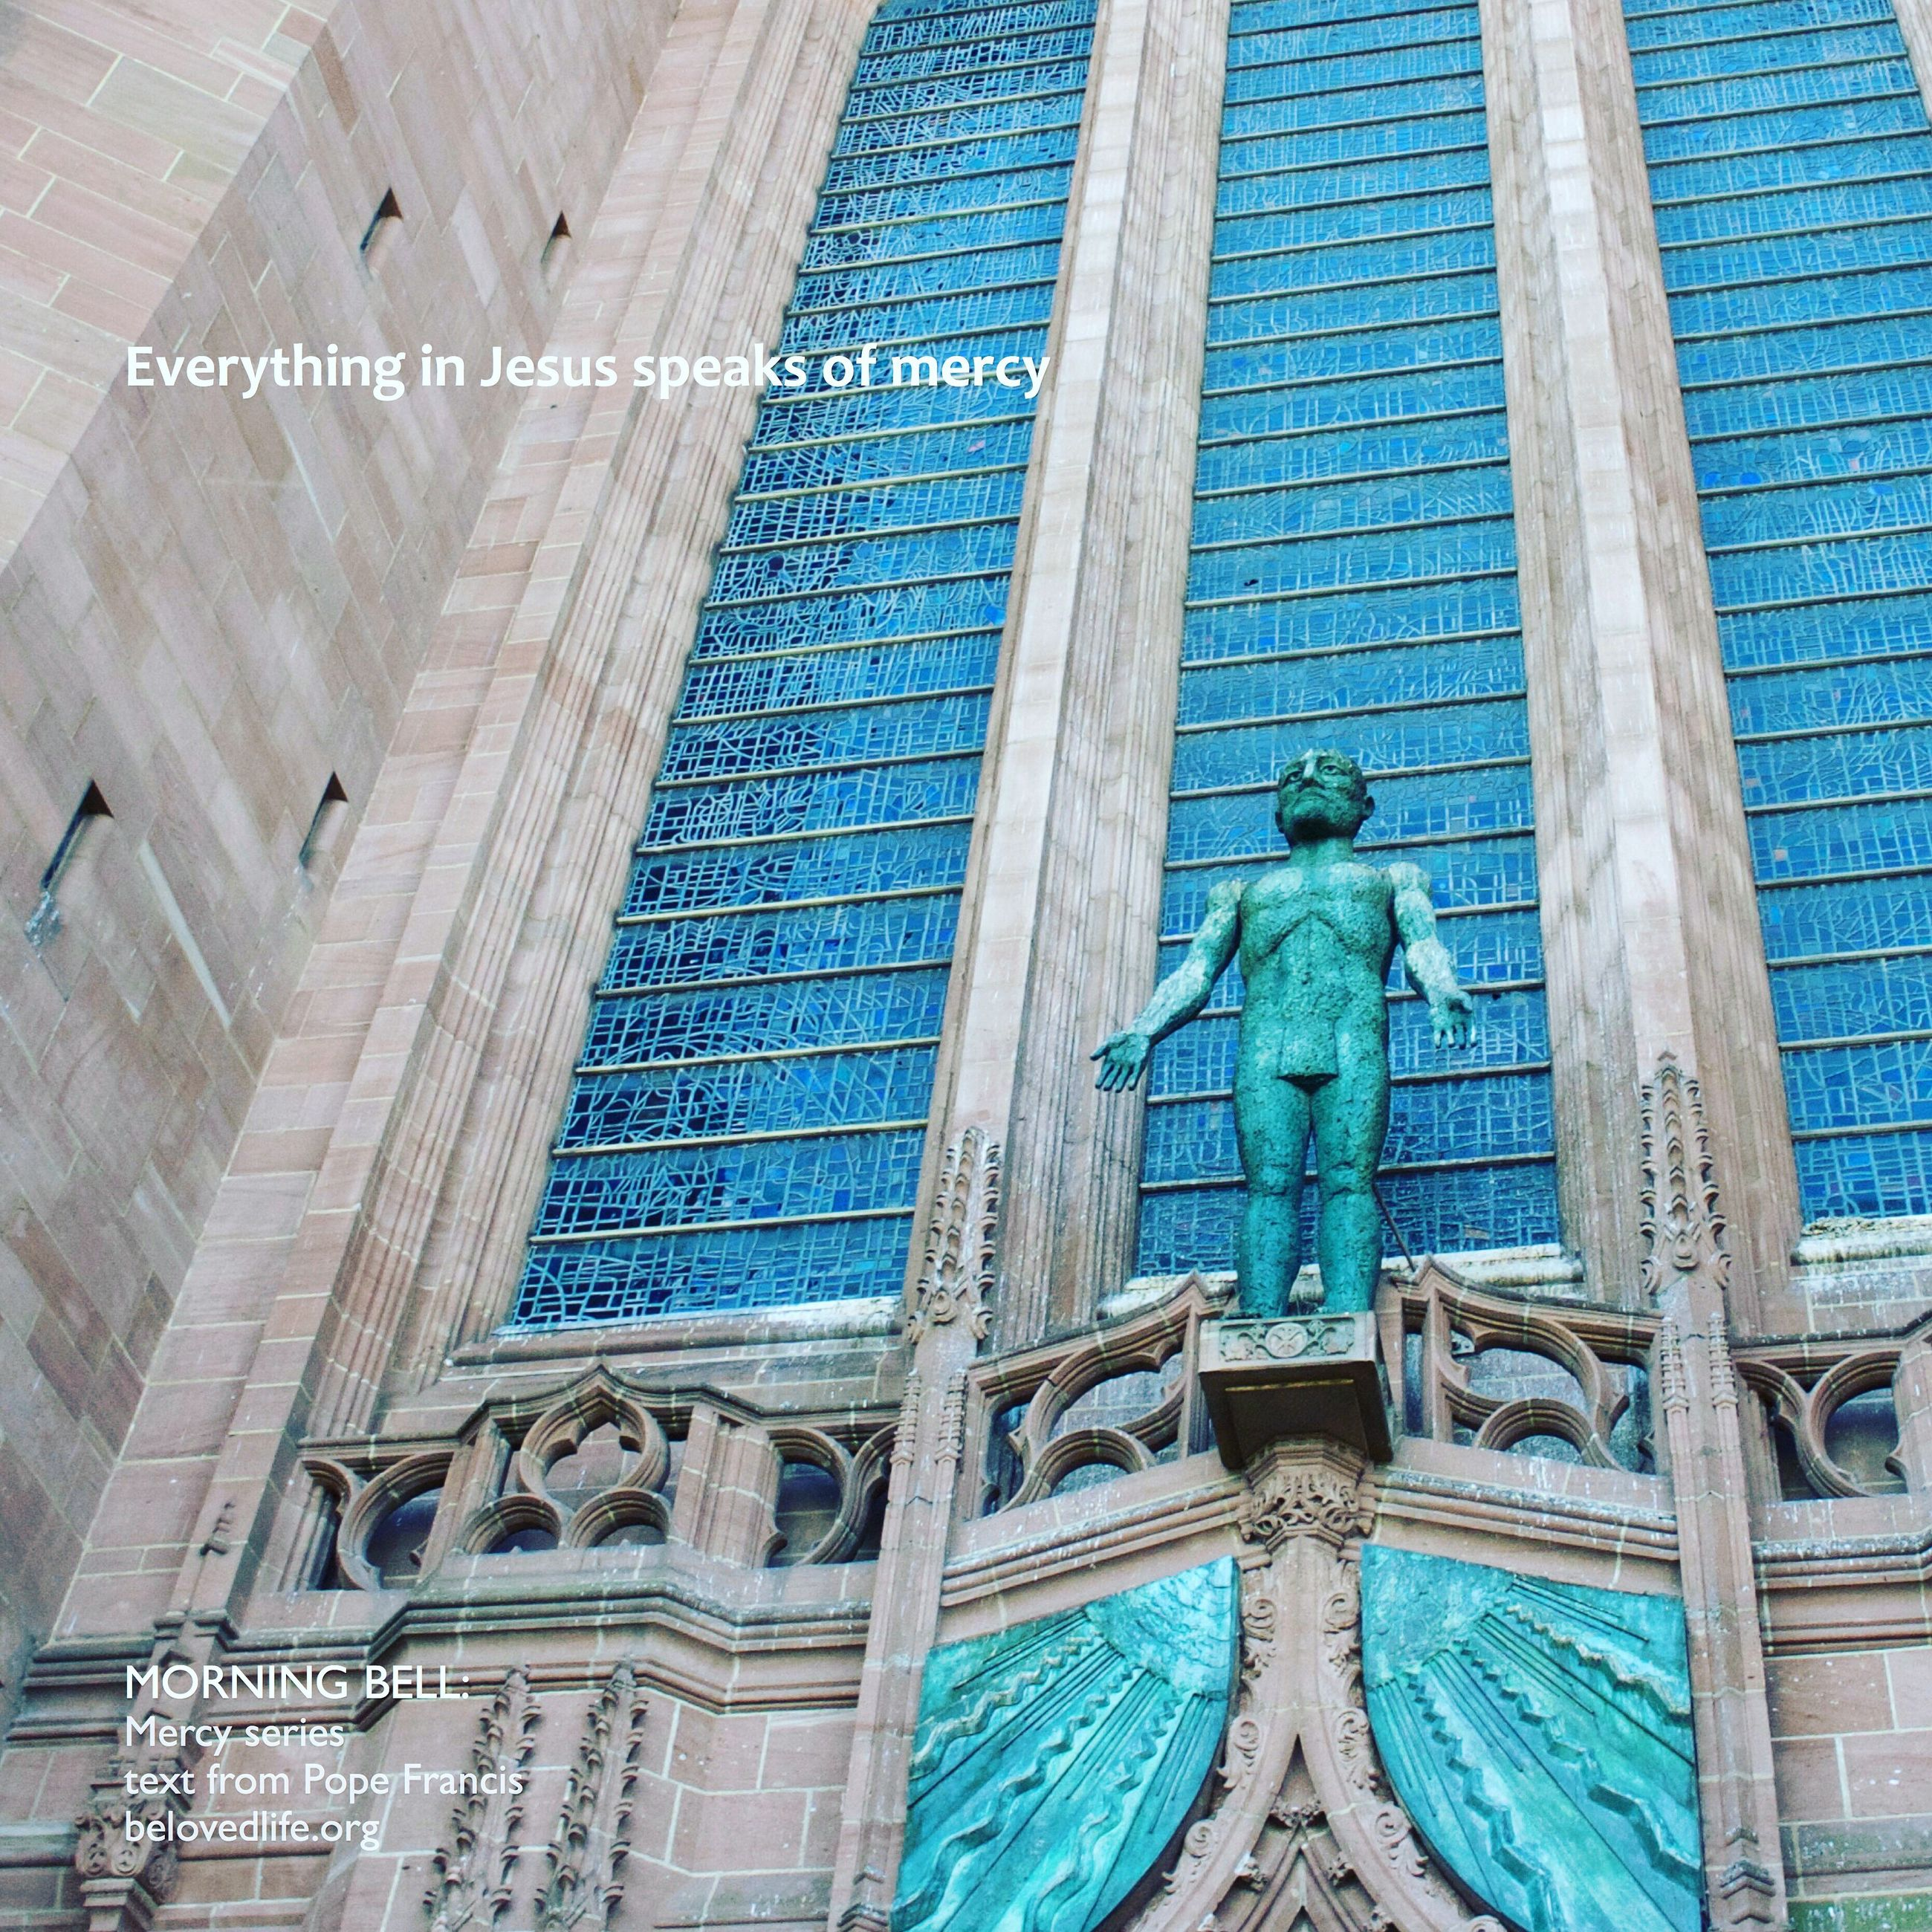 architecture, art and craft, built structure, art, building exterior, creativity, human representation, low angle view, blue, sculpture, building, statue, wall - building feature, outdoors, day, carving - craft product, pattern, city, graffiti